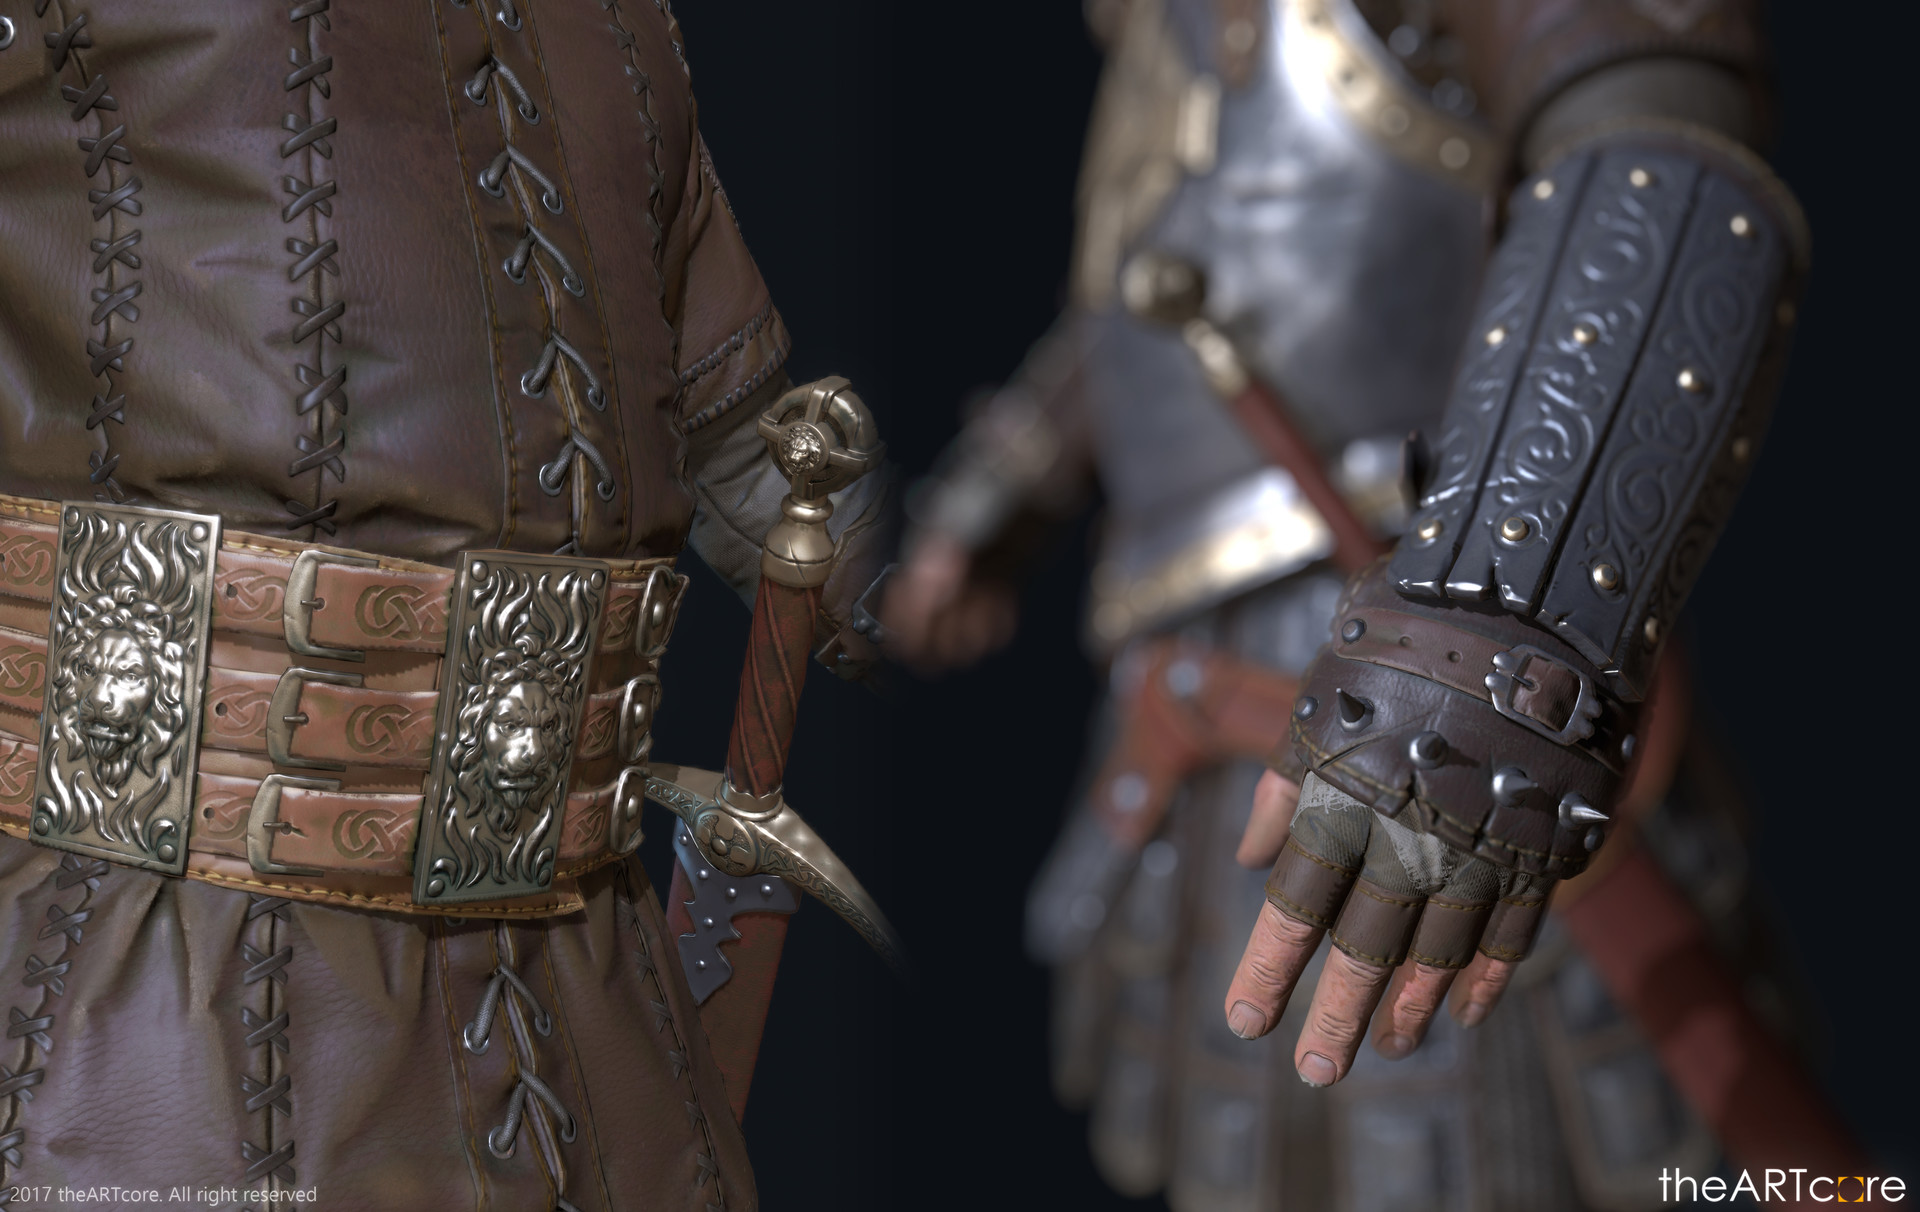 denis-didenko-warrior-details-01.jpg